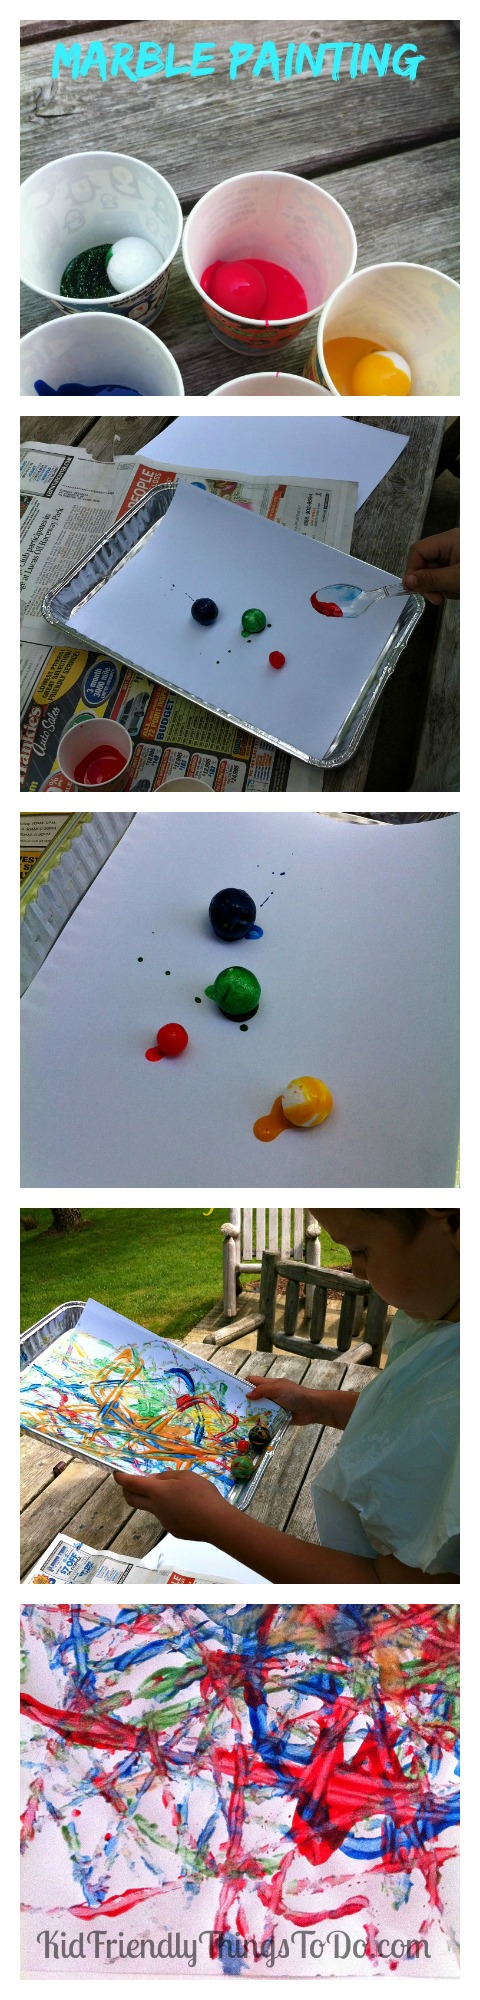 Marbles are so much fun!  Painting with marbles is even more fun for kids!